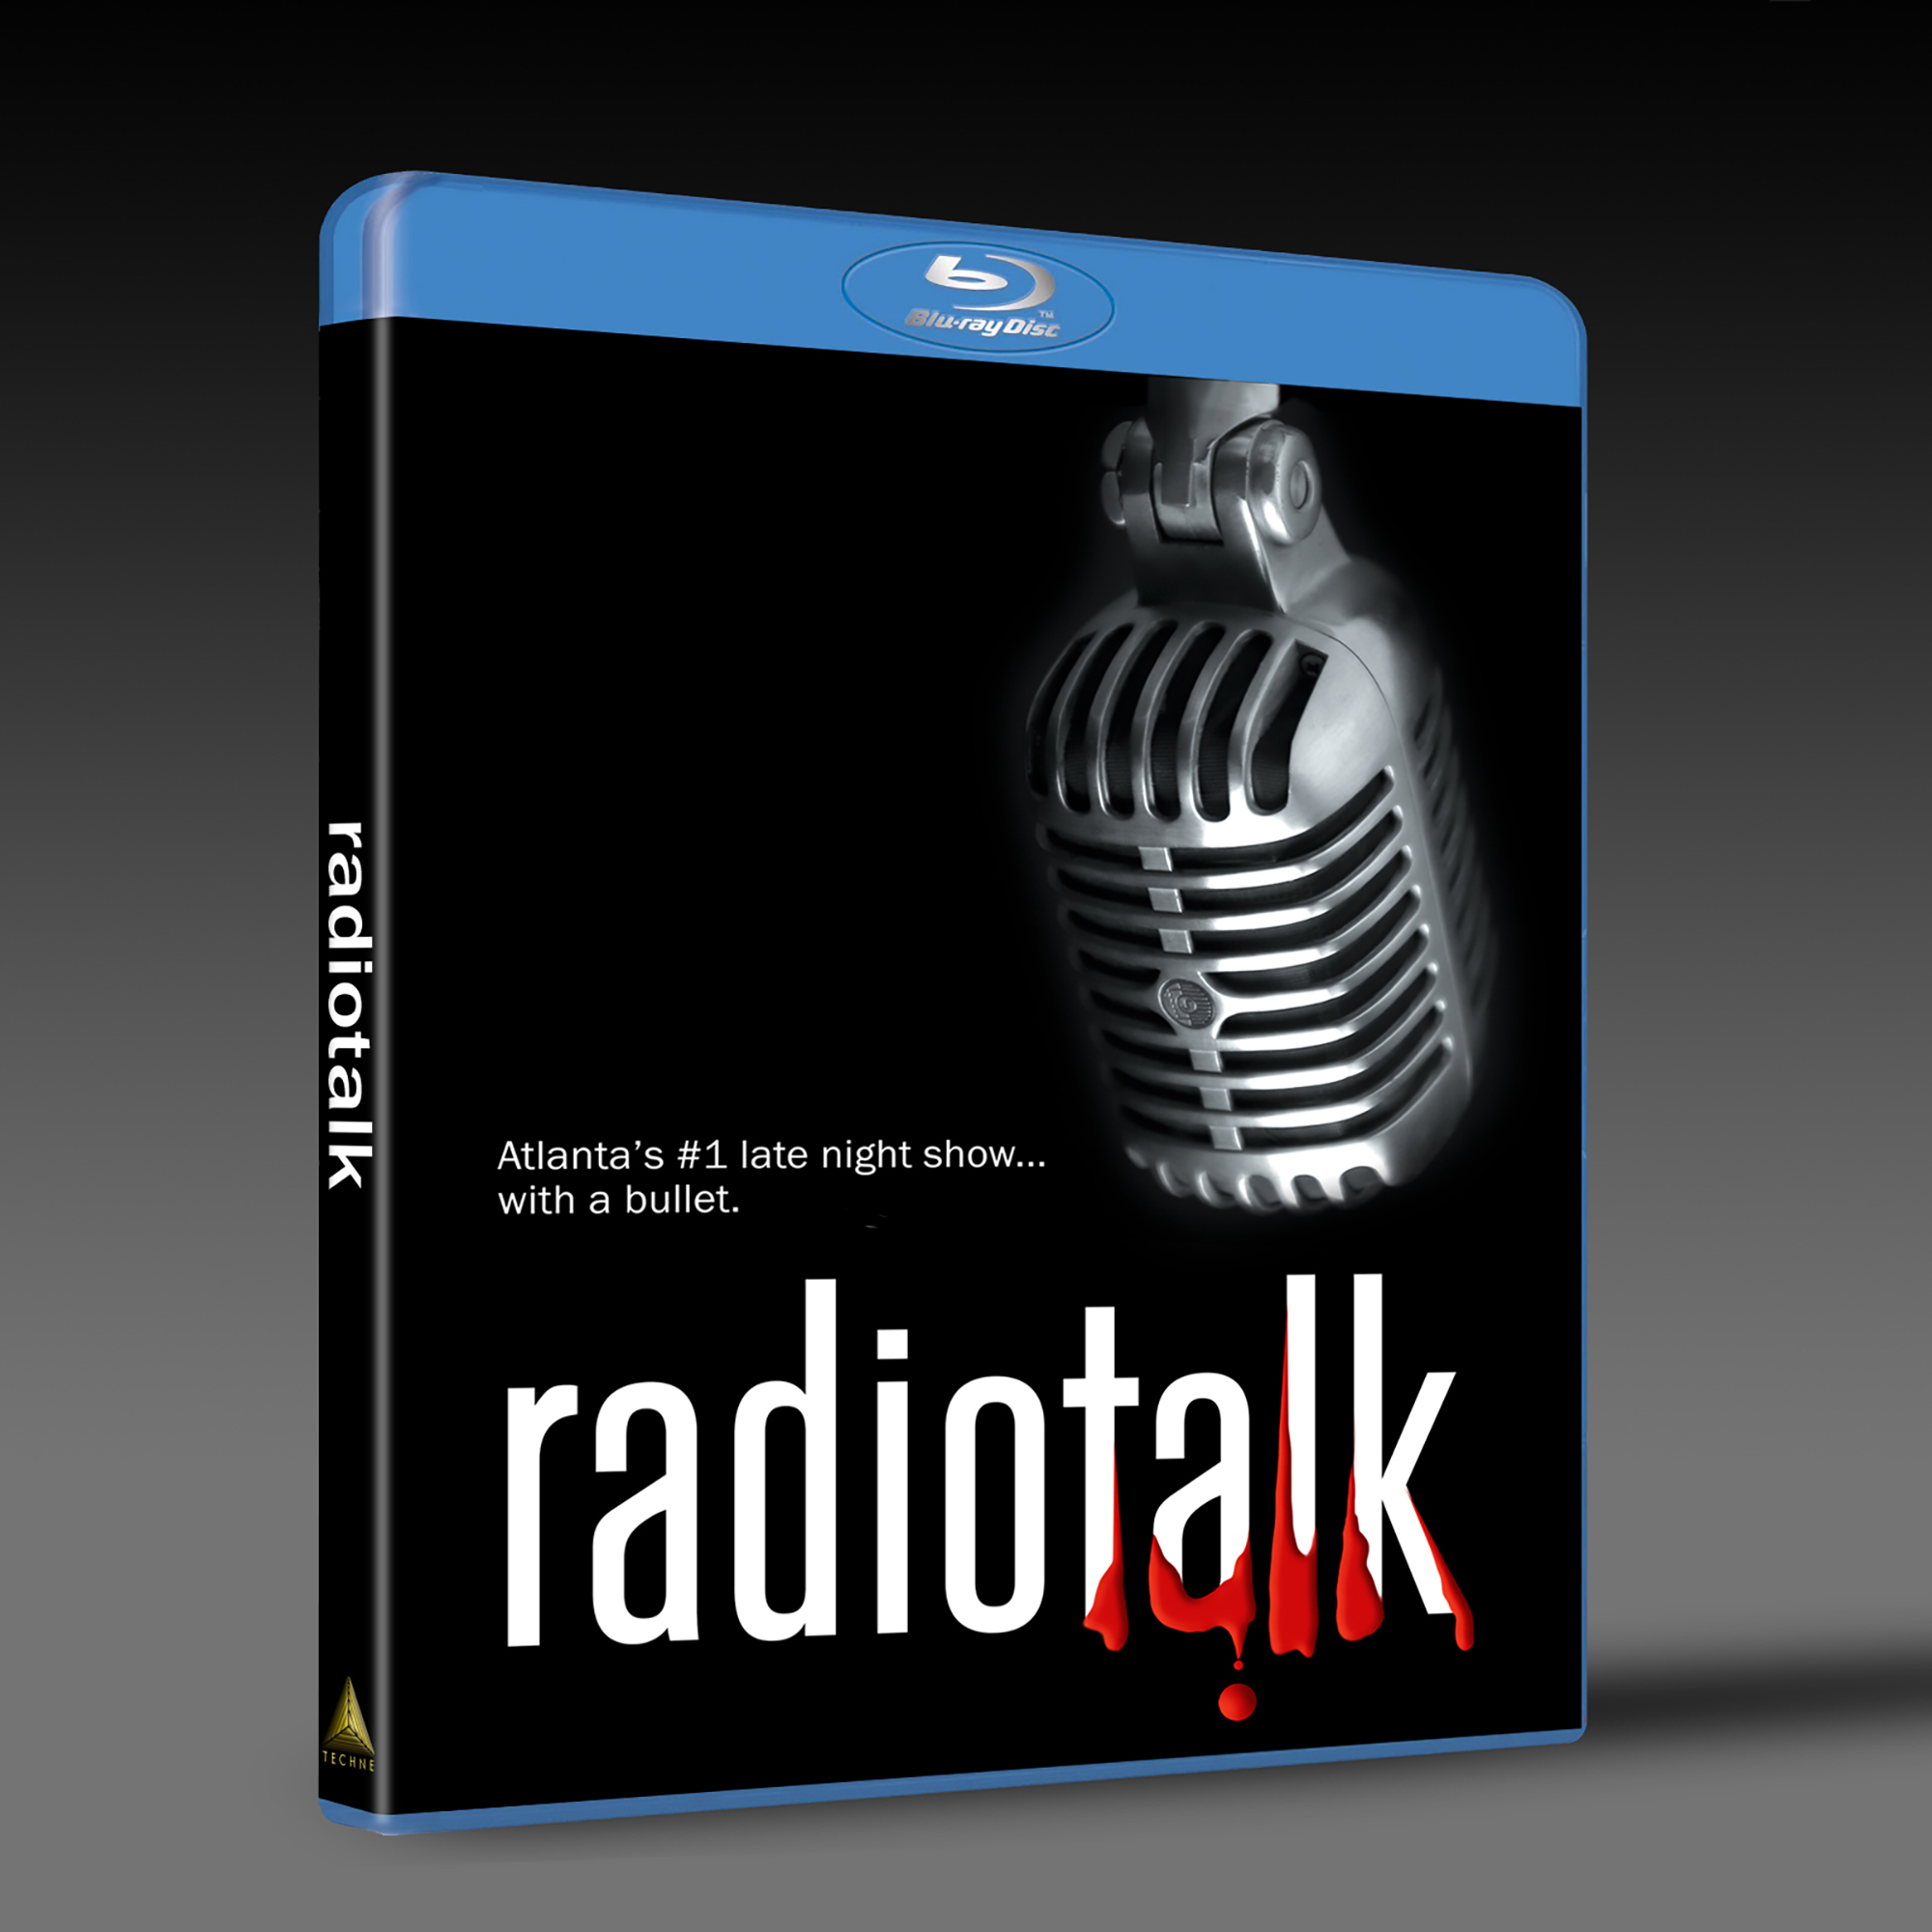 DiscArt-3-radiotalk bluray-case.jpg